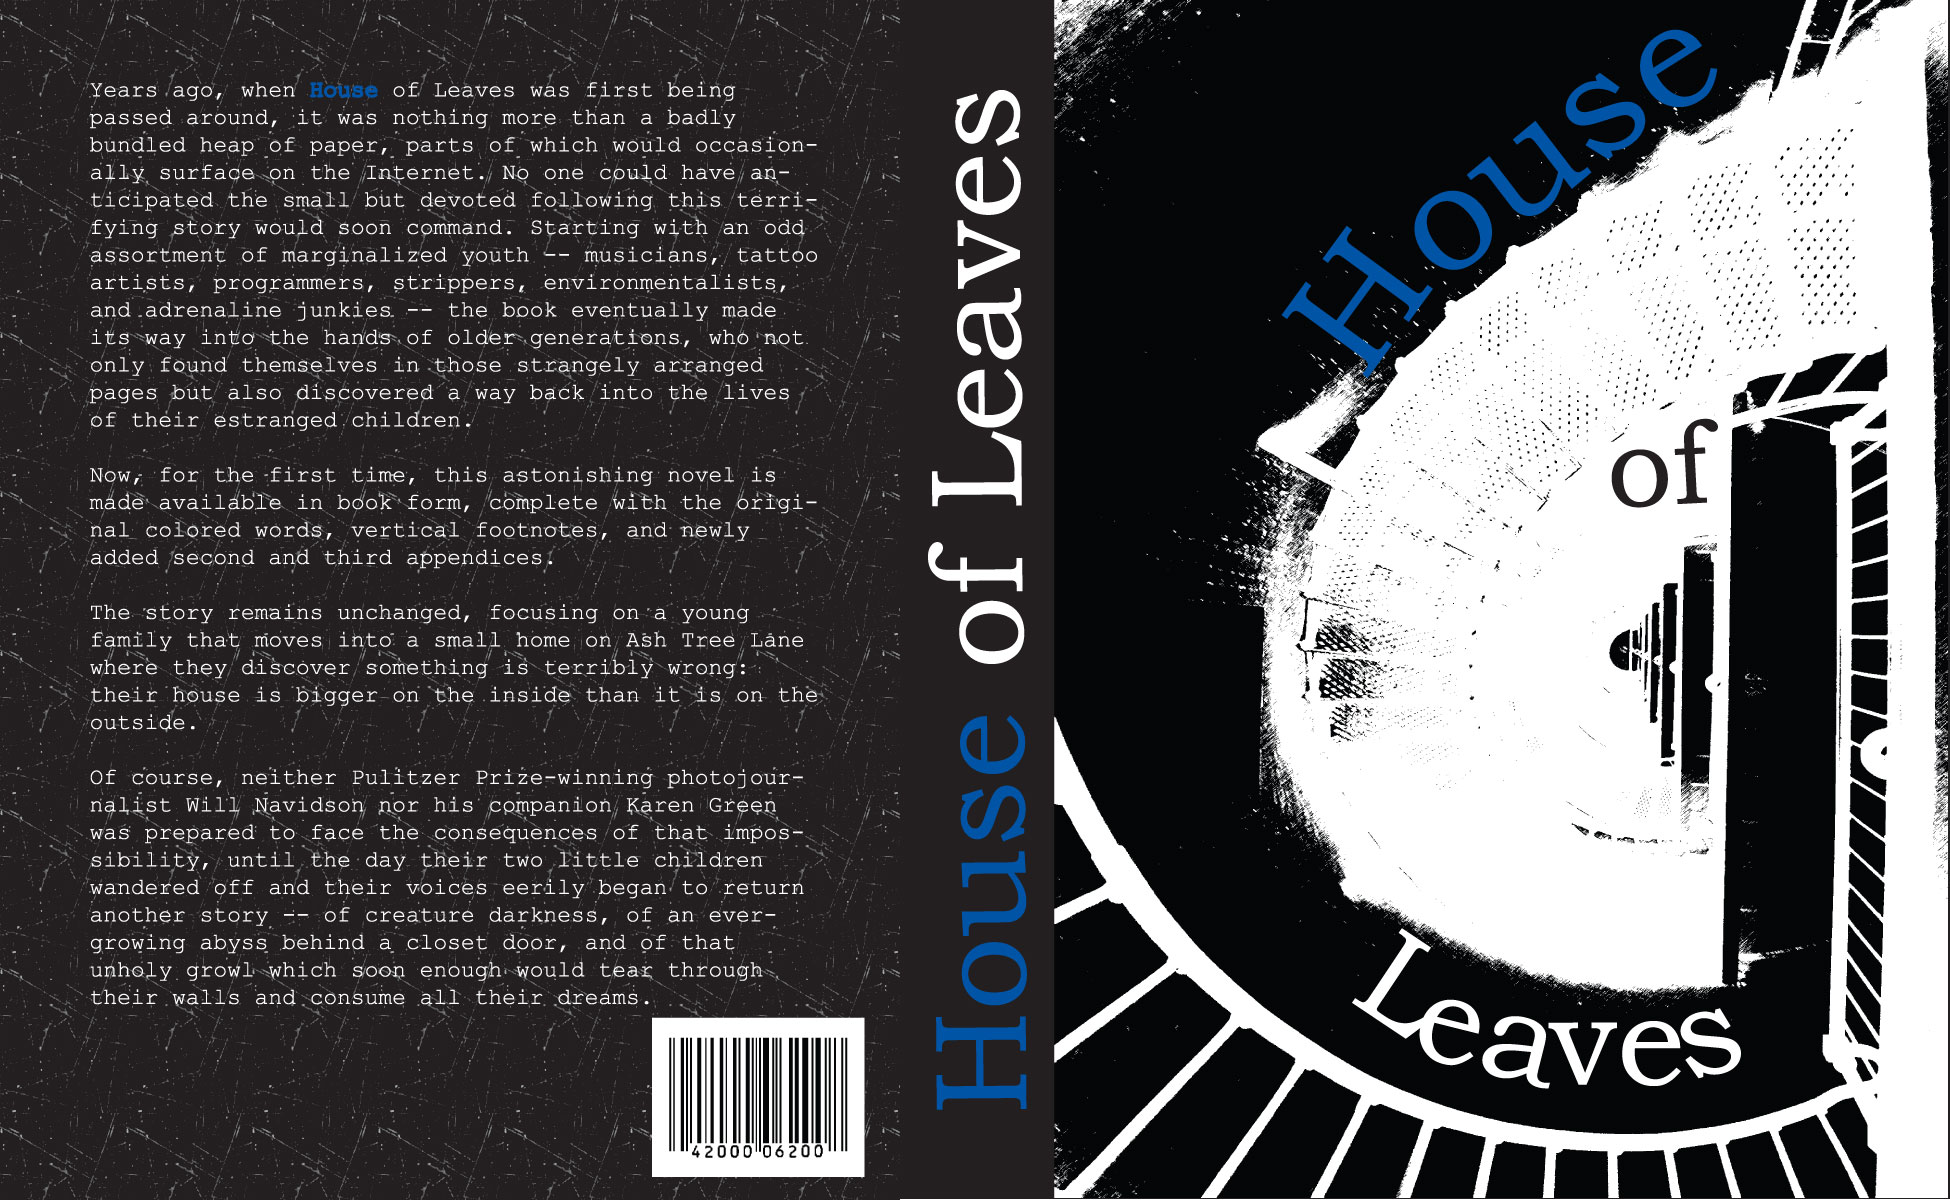 house-book-cover-2.jpg